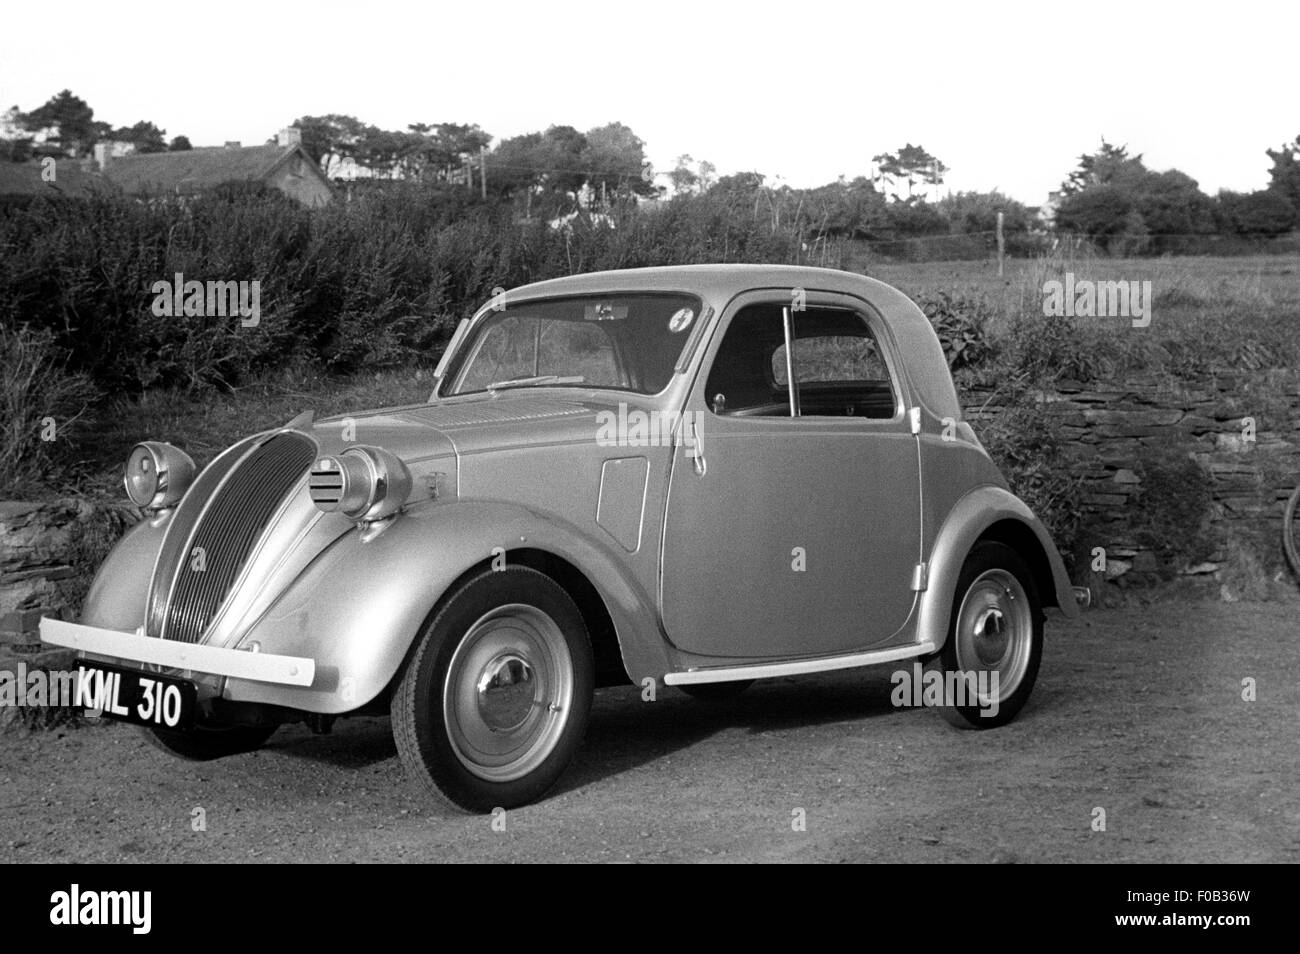 A Topolino Fiat 500 parked near a field. - Stock Image